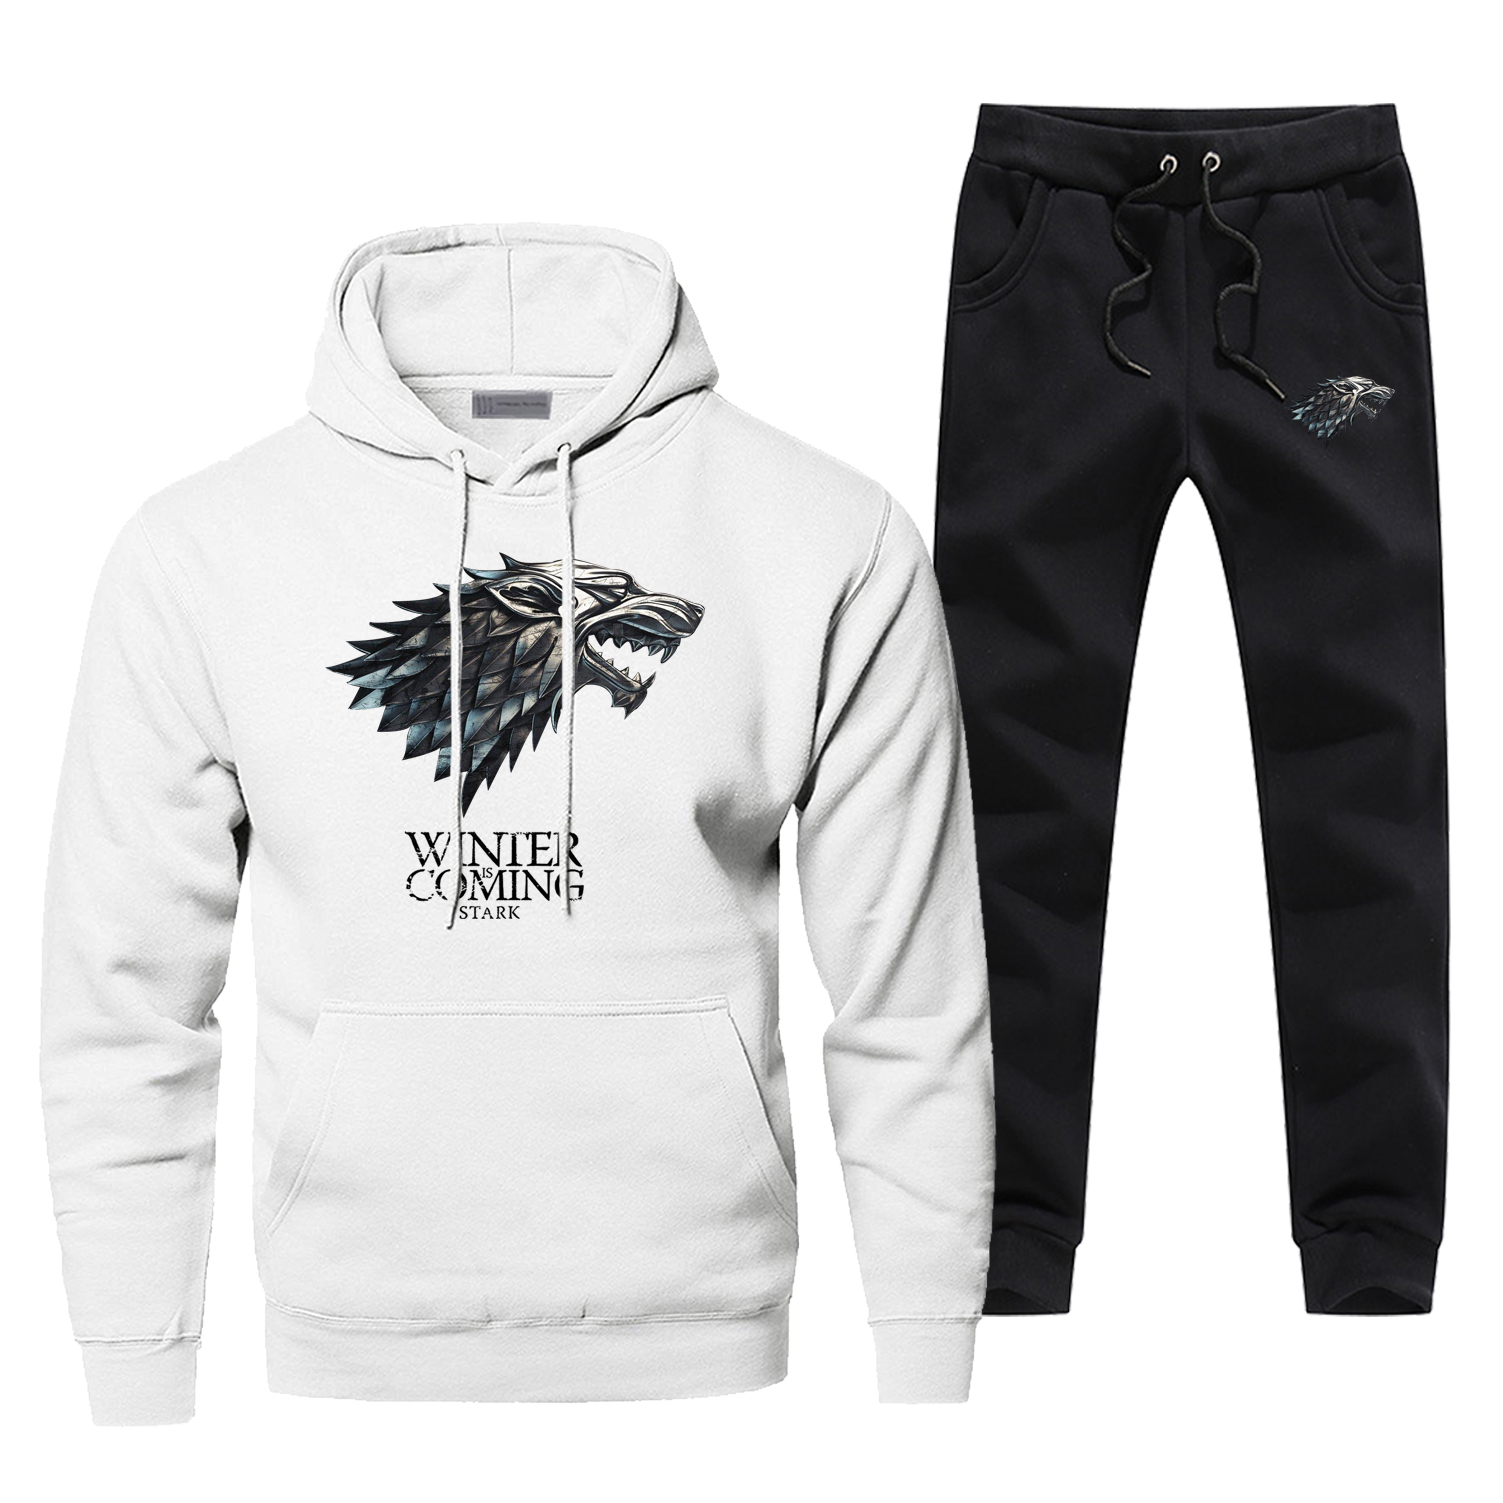 Game Of Thrones Casual Sportsman Wear House Stark Fashion TV Show Pants Warm Sweatshirt Men Winter Is Coming Full Suit Tracksuit